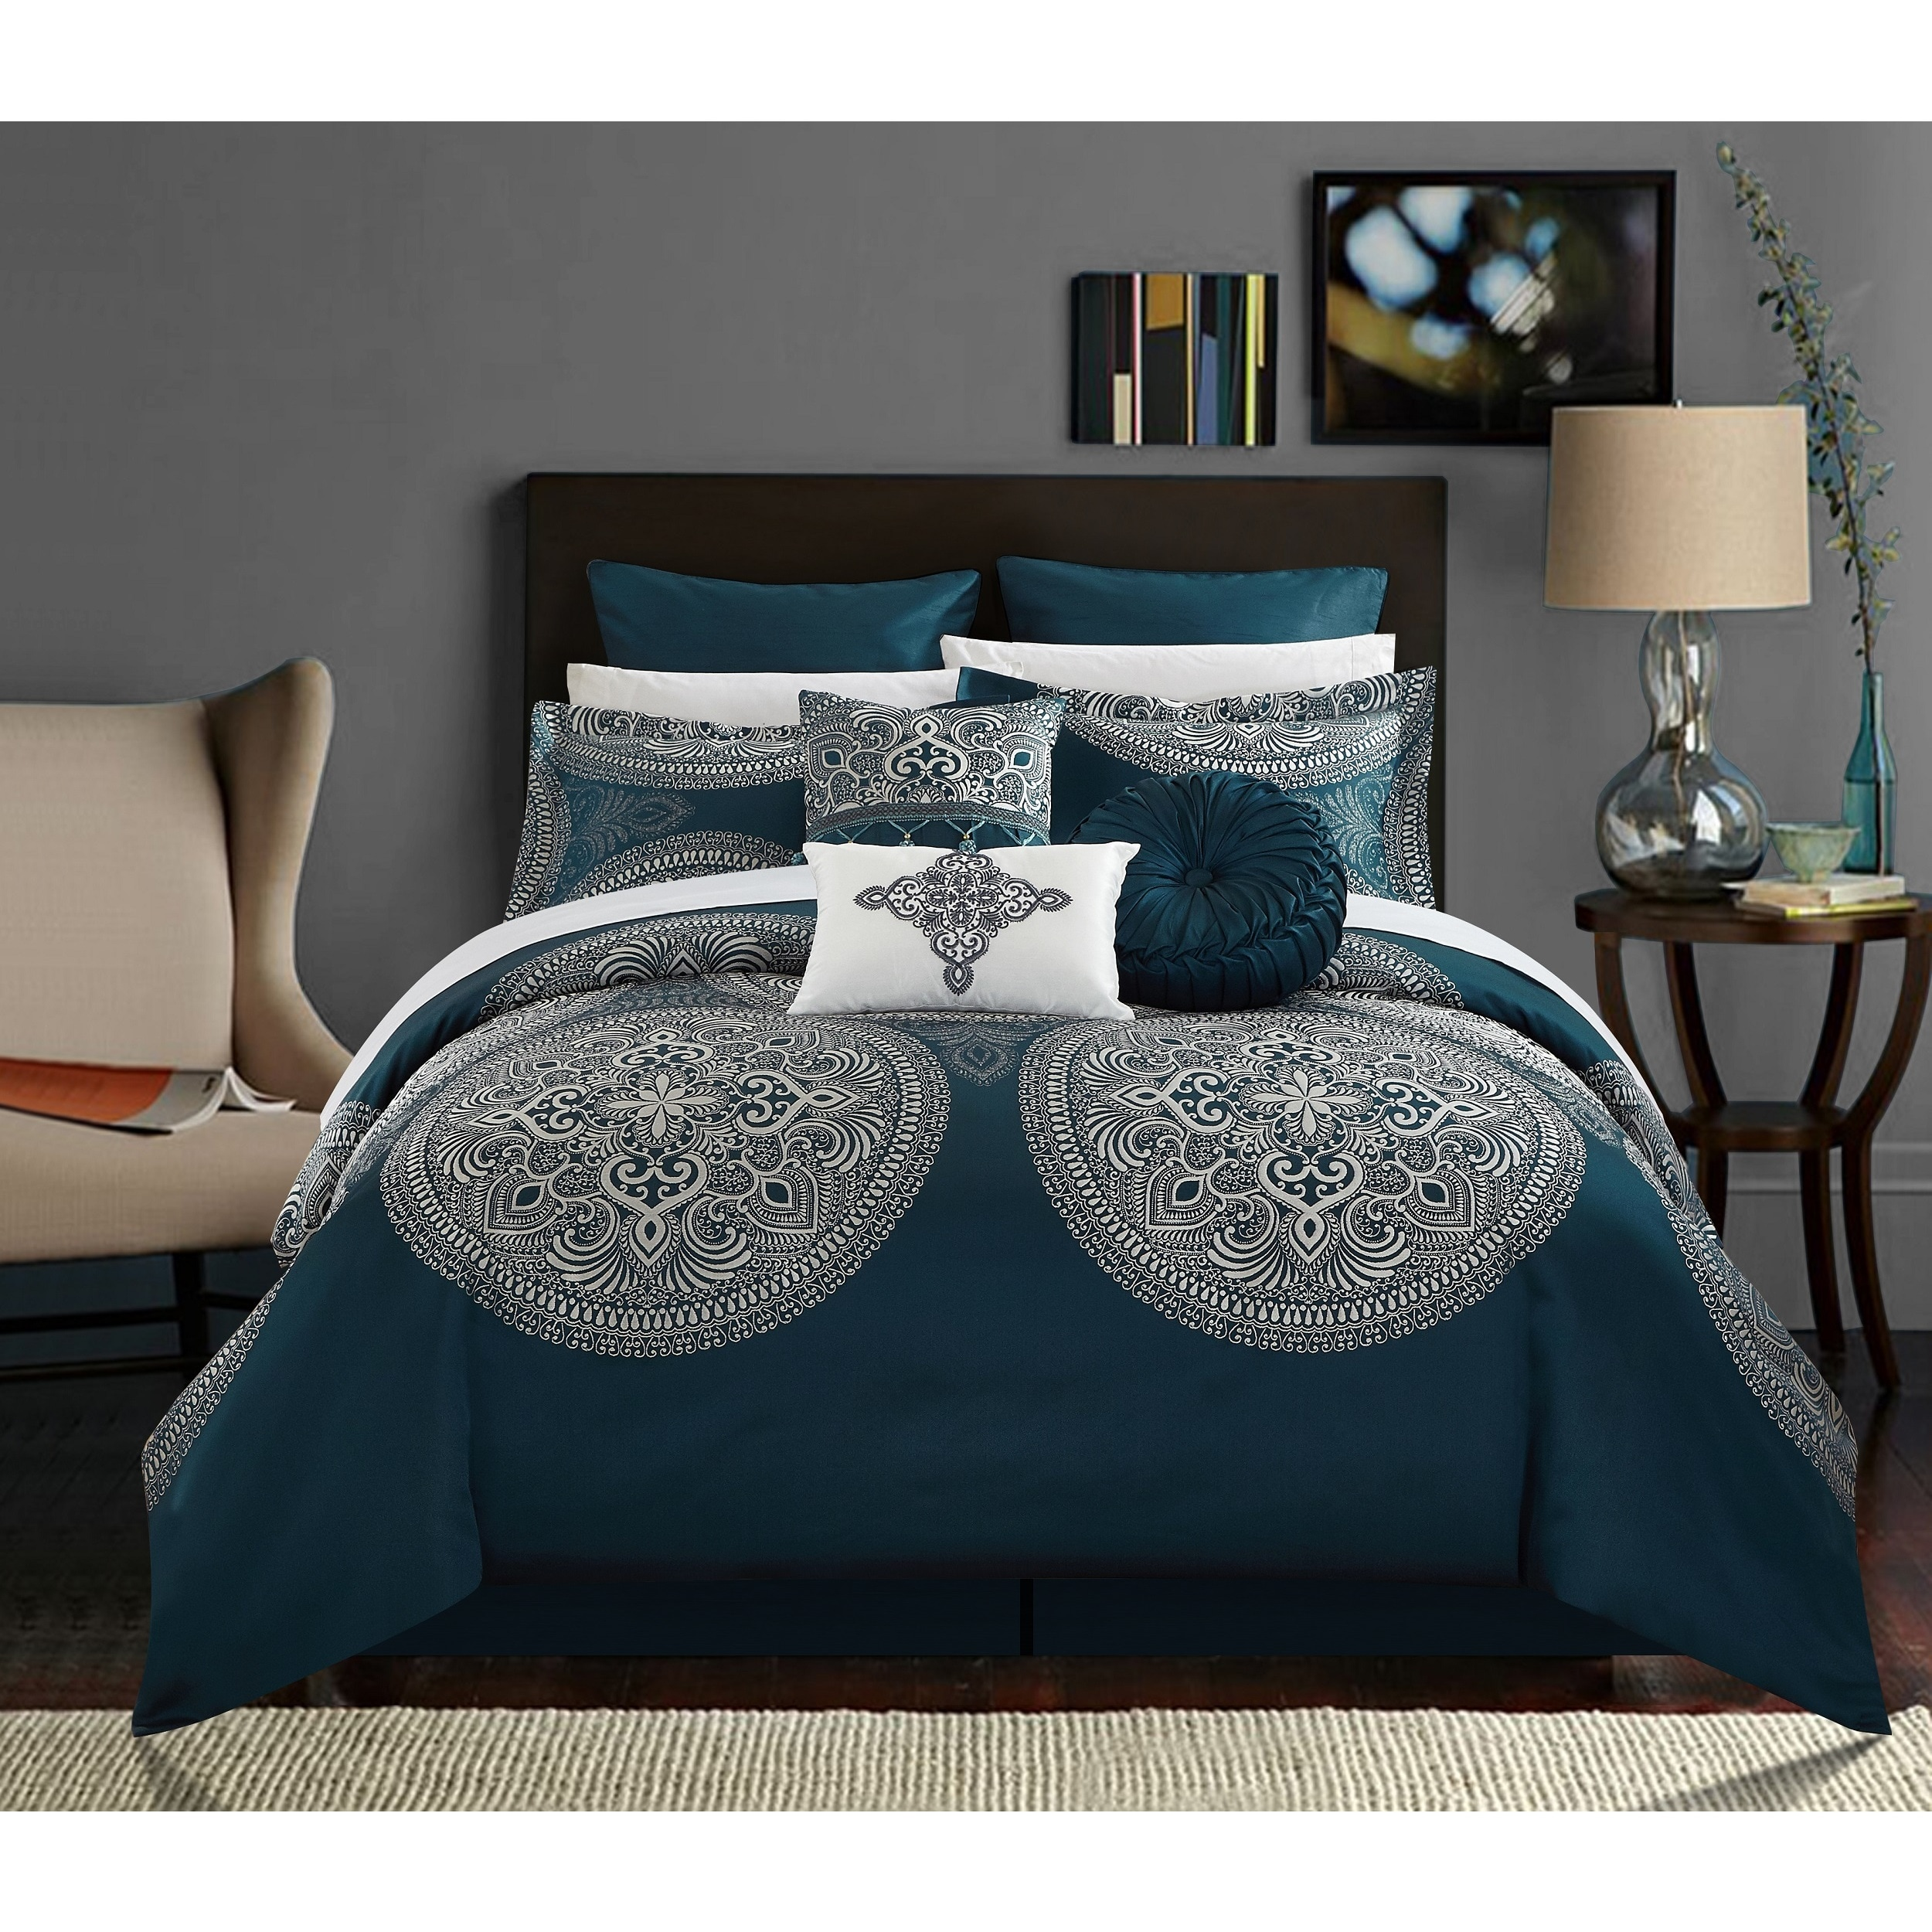 target for daybed girls bed full baby size twin boy childrens girl comforter boys of bedding teal walmart queen solid sets